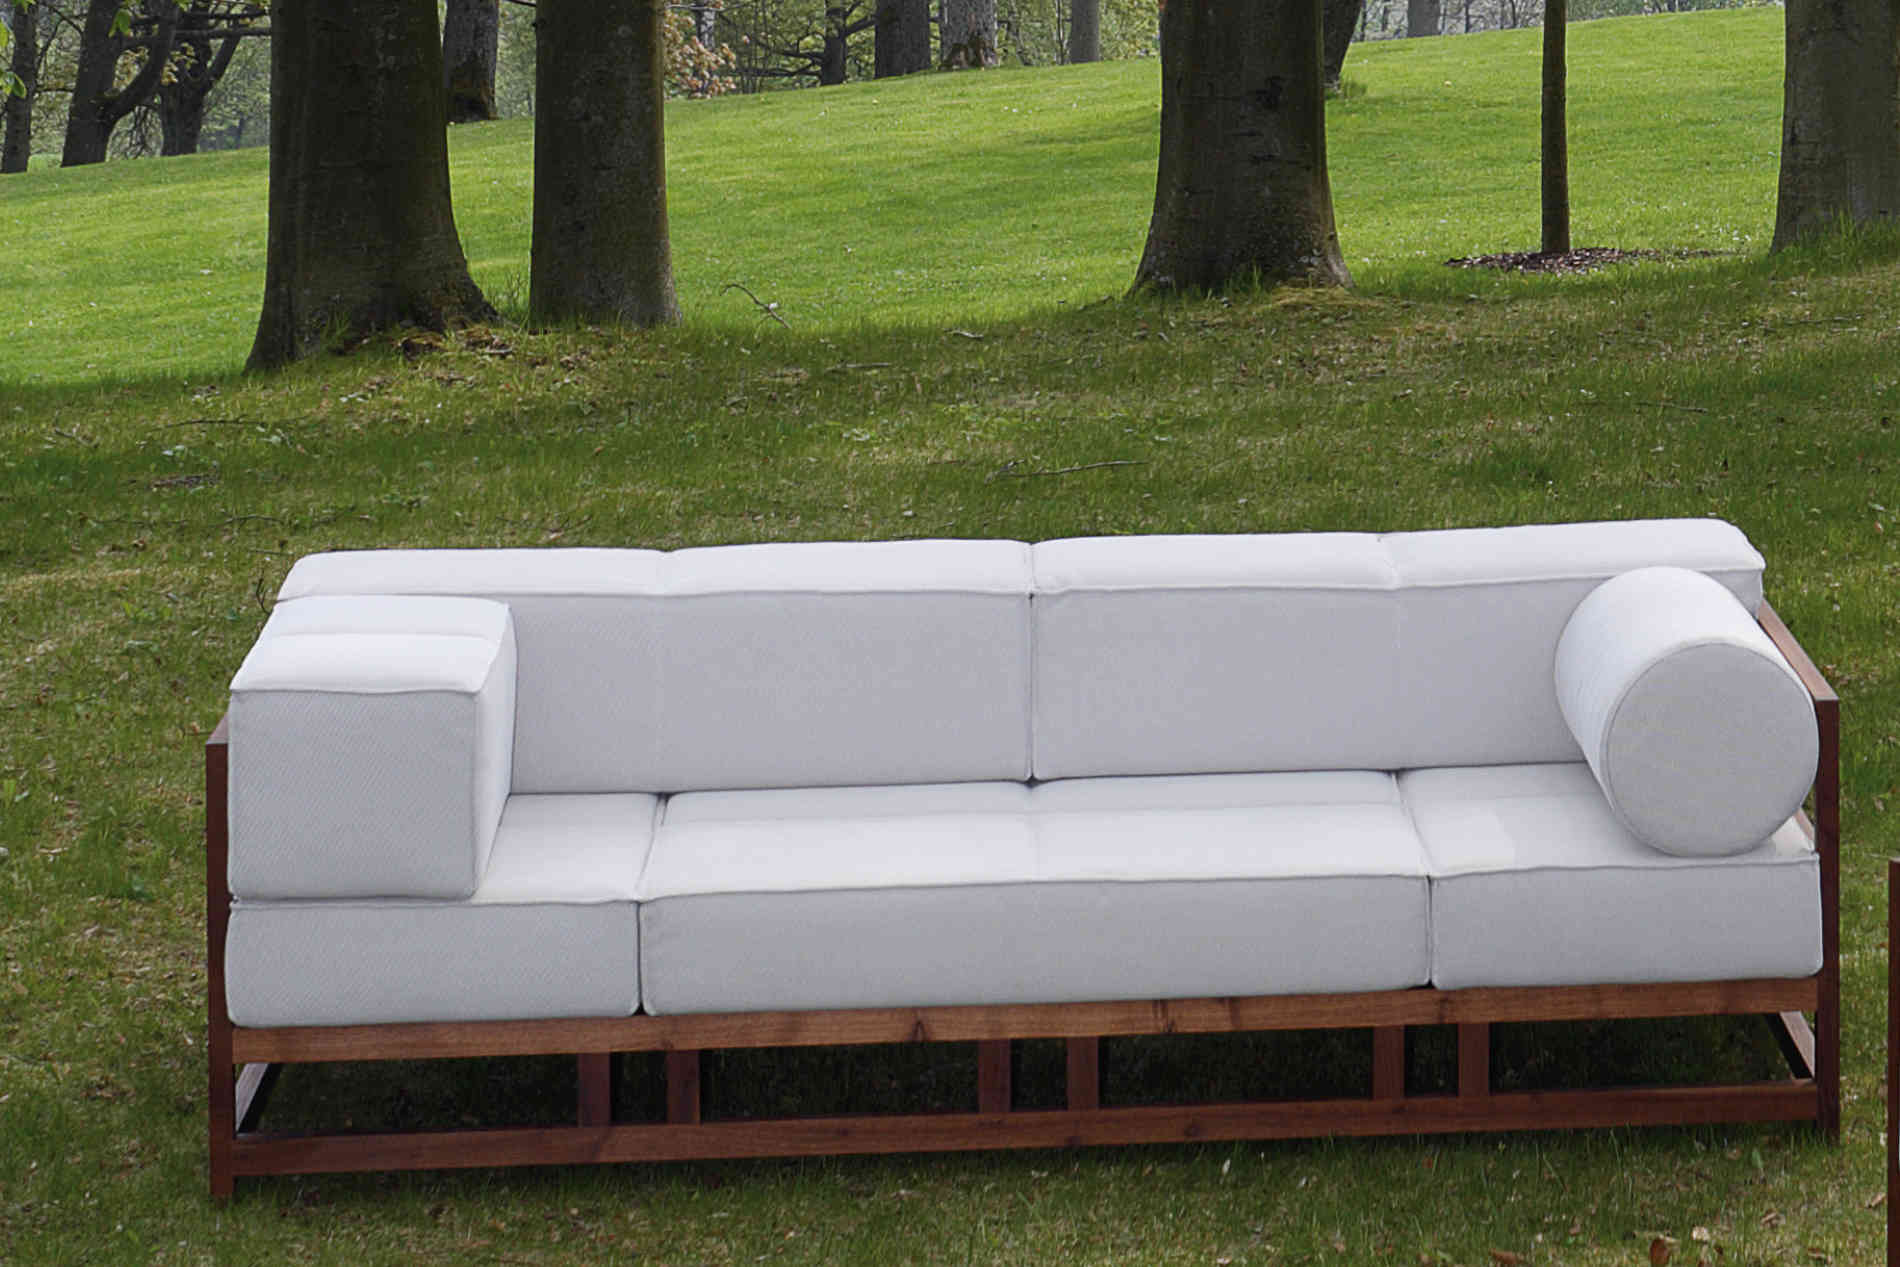 Sofa Bruehl Easy Pieces Natursofa Outdoorstoff Holzgestell.